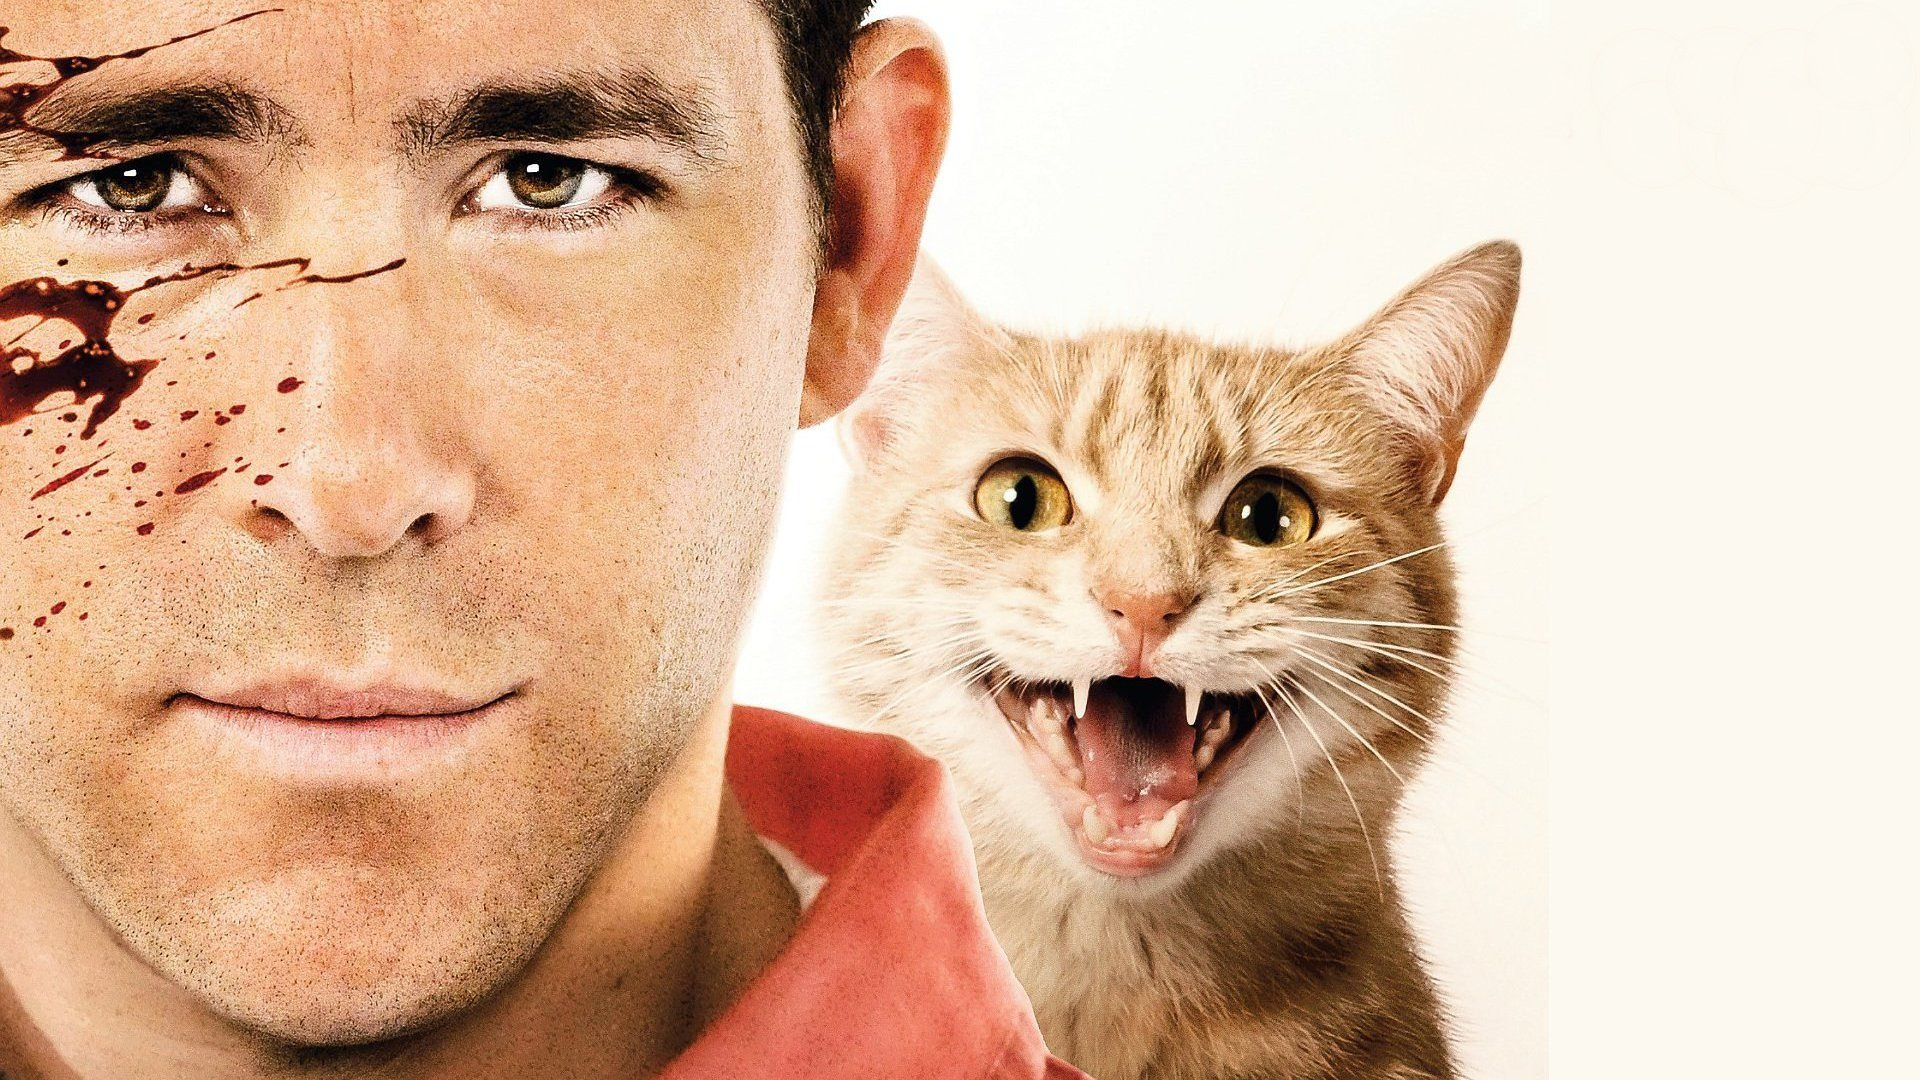 The Best Ryan Reynolds Movie And Why It's Unfairly Overlooked